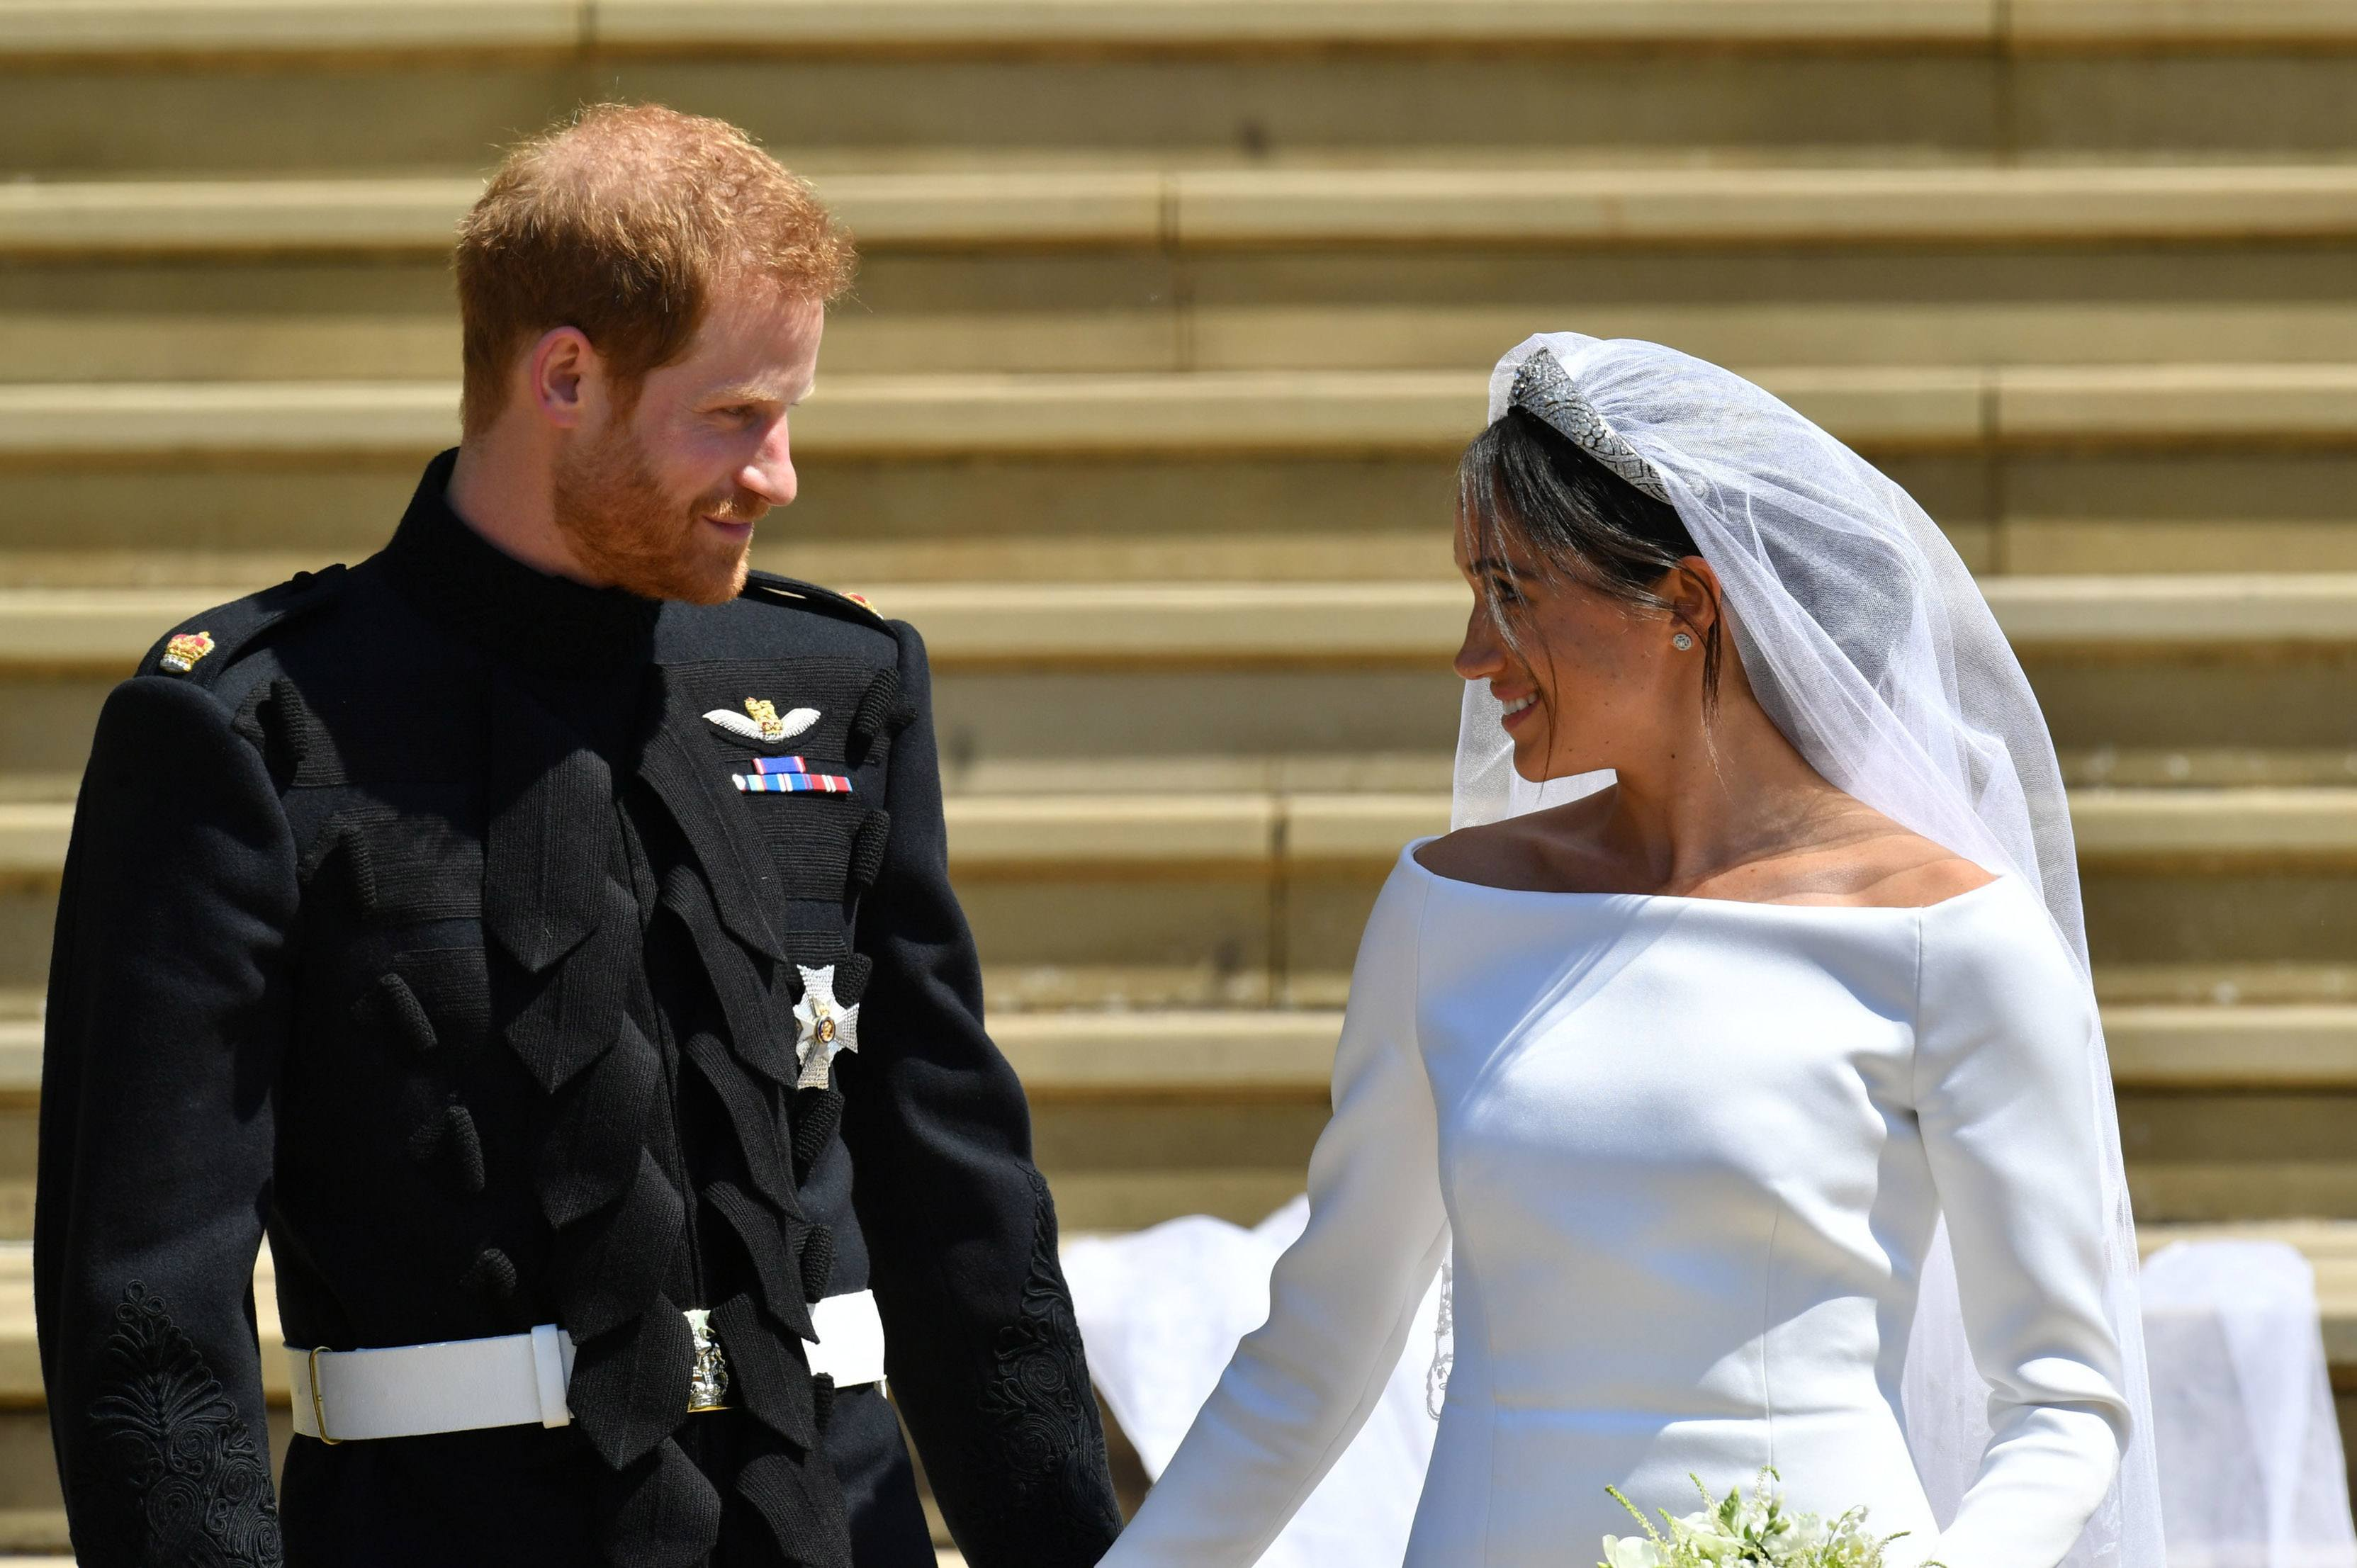 WINDSOR, UNITED KINGDOM - MAY 19: Prince Harry and Meghan Markle walk down the steps of St George's Chapel after their wedding in St George's Chapel at Windsor Castle on May 19, 2018 in Windsor, England. (Photo by Ben Birchall - WPA Pool/Getty Images)